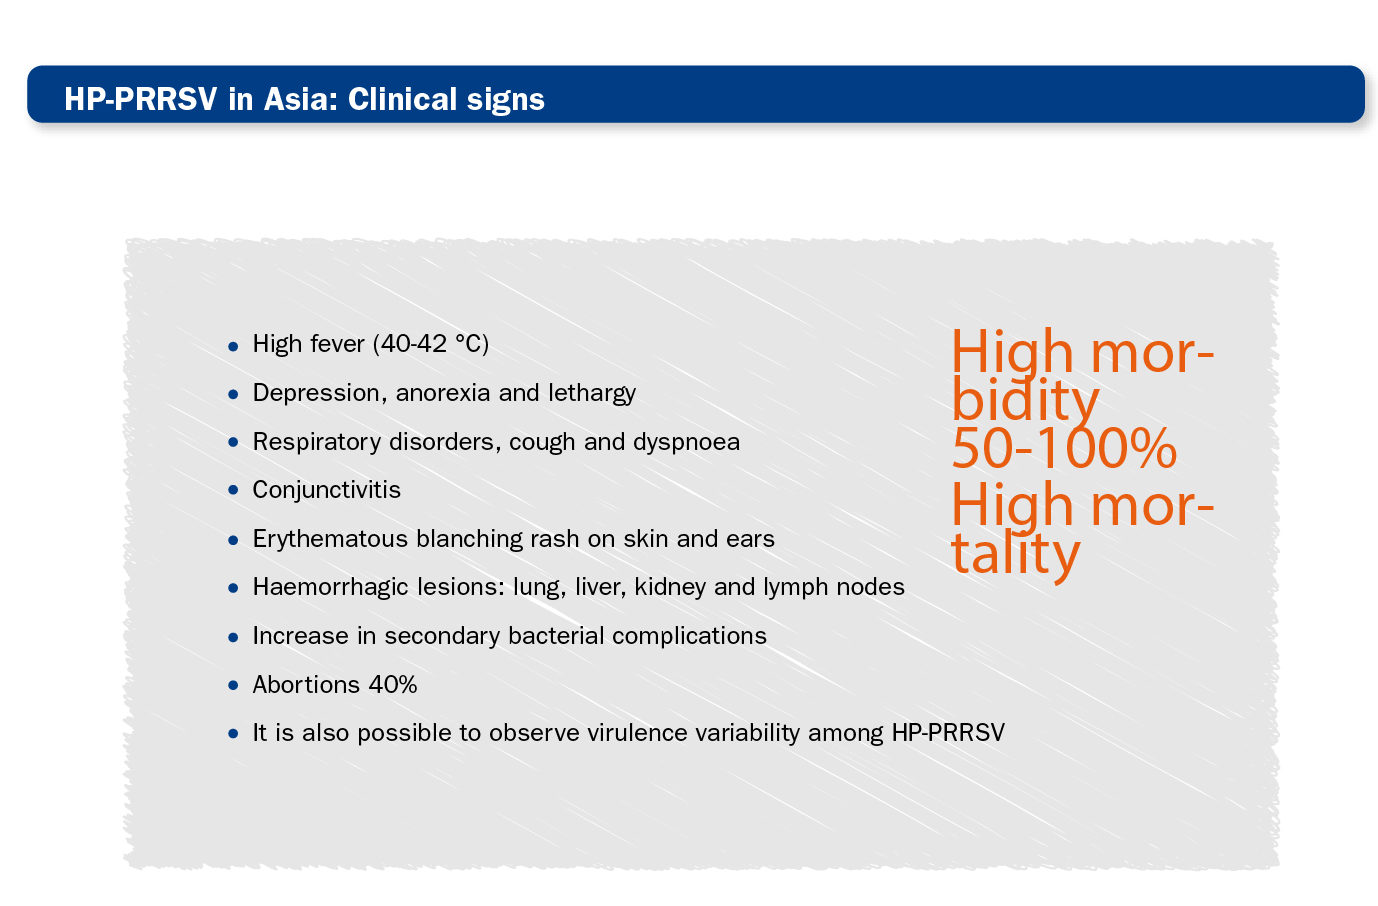 Highly pathogenic PRRS in Asia